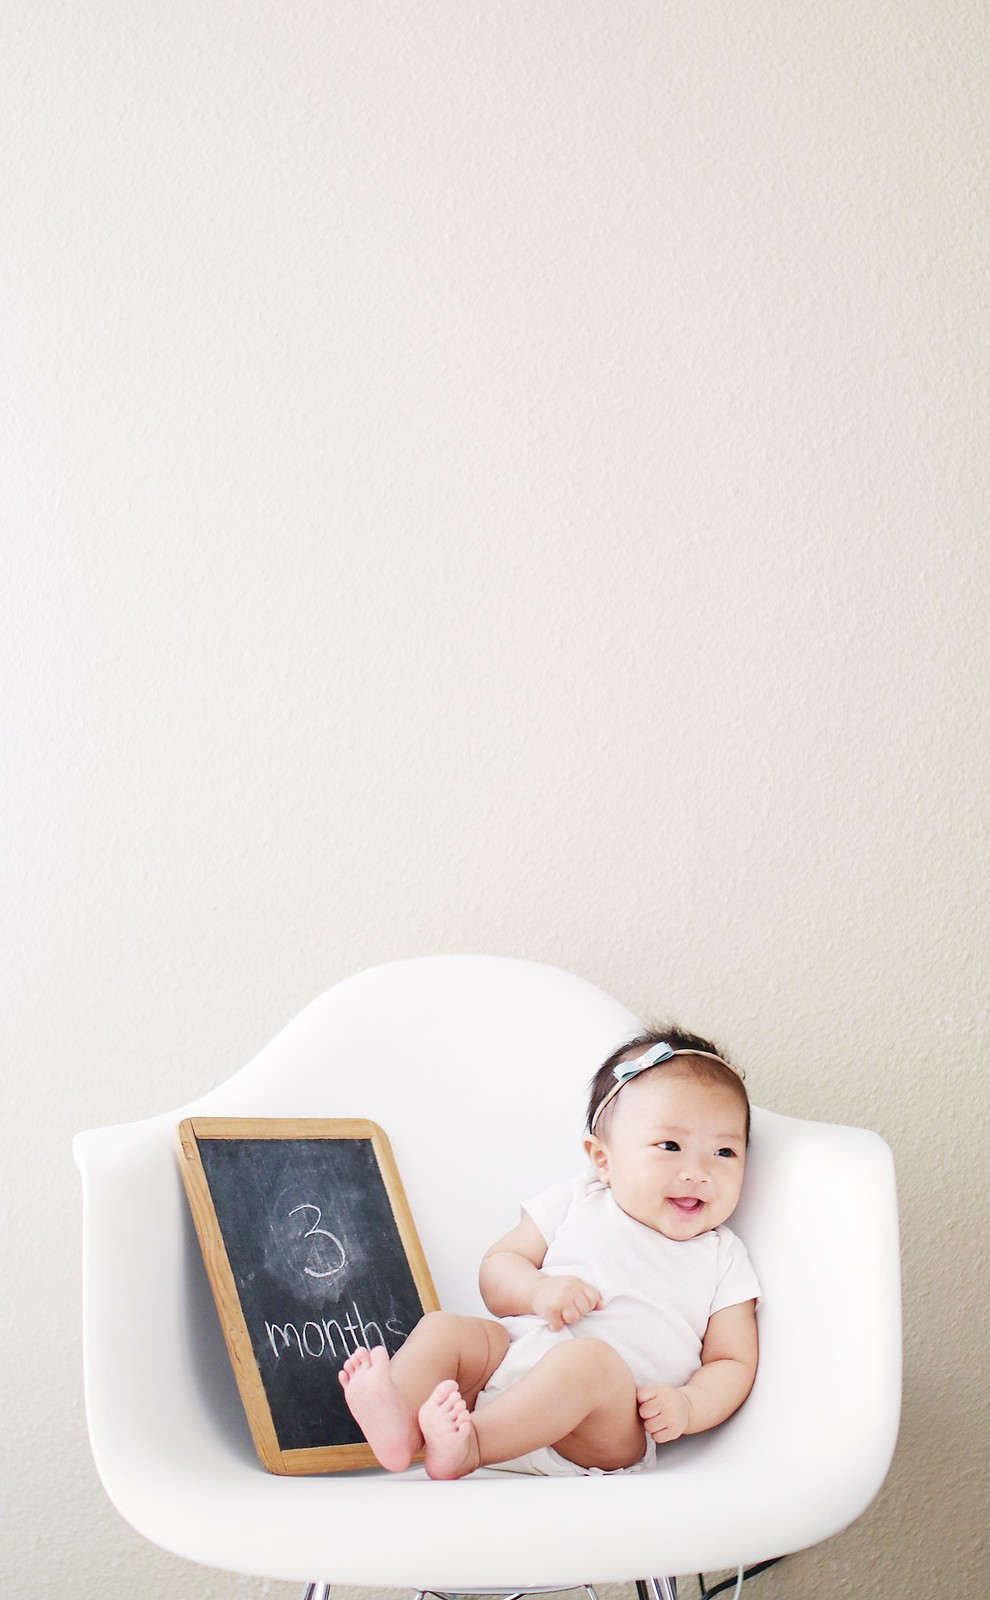 reverie hope at 3 months